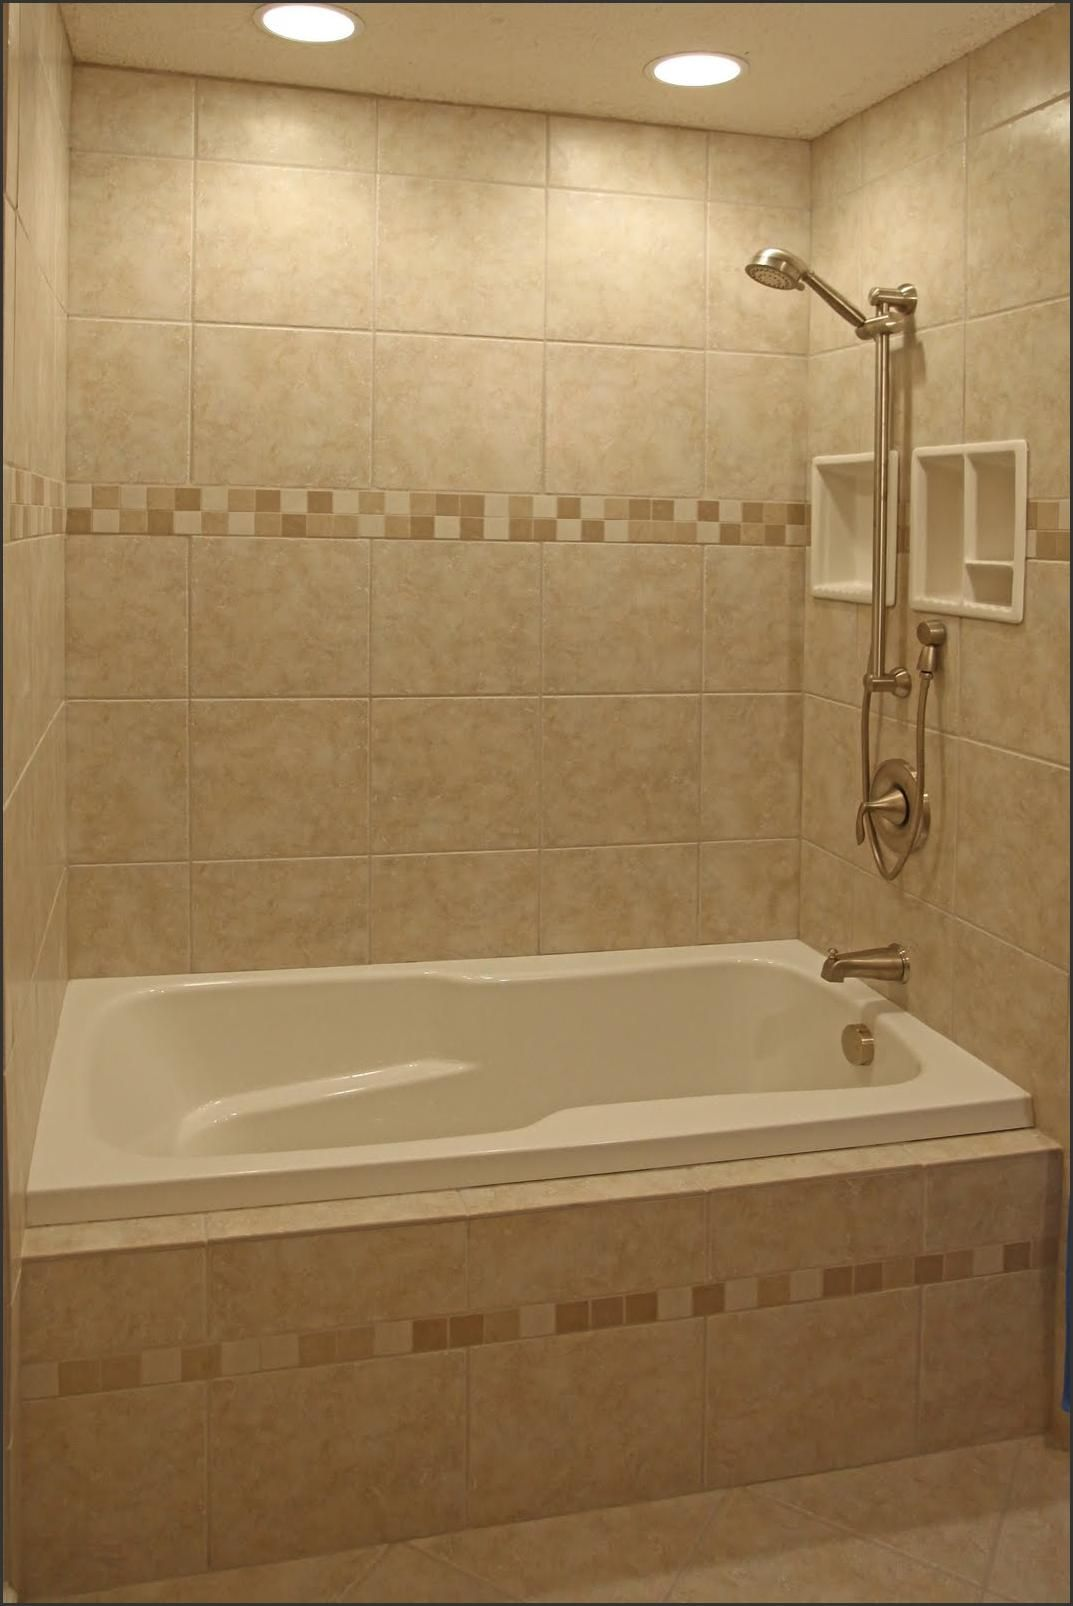 images of bathroom tile 1000 images about bathroom tile on pinterest shower tiles small bathroom tiles and shower walls